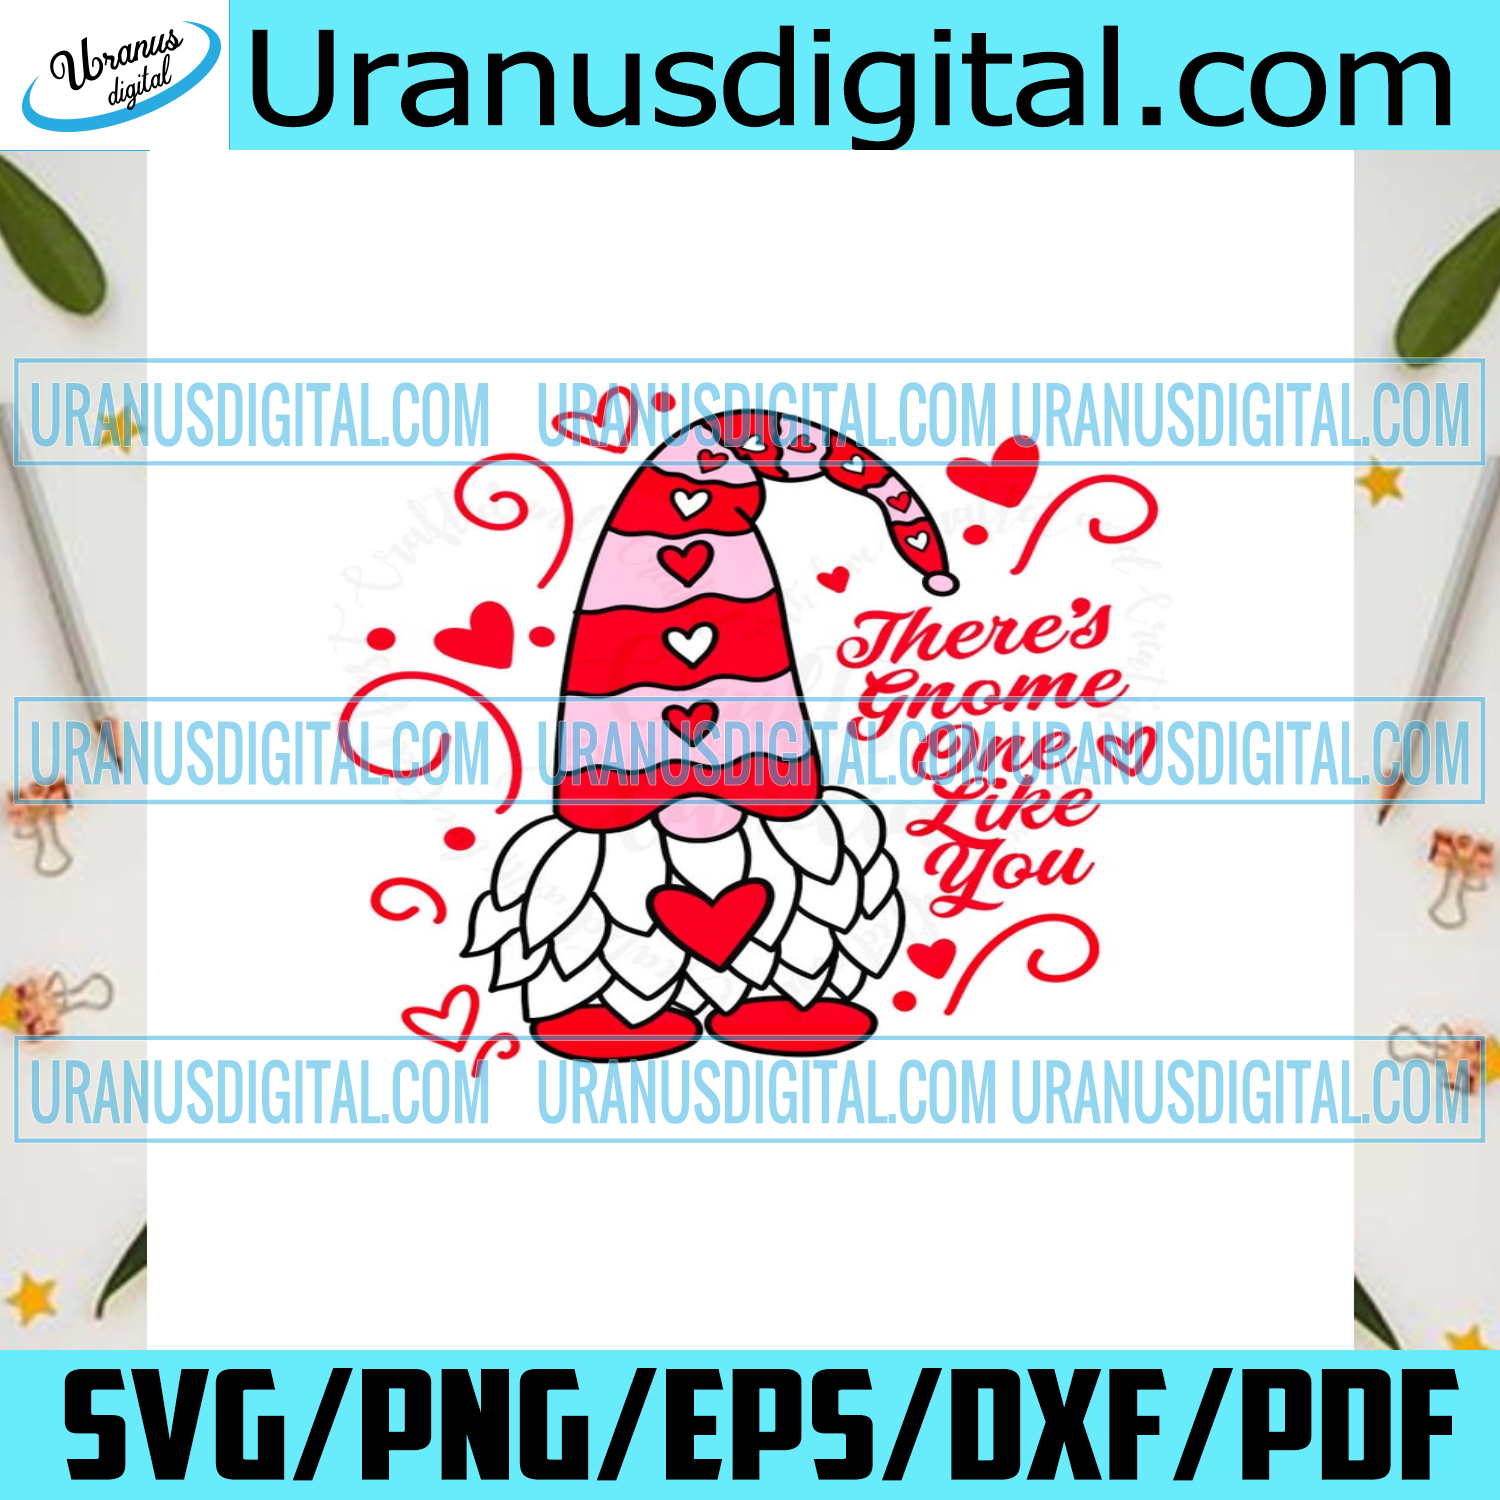 Cute Gnome Valentines Svg, Valentine Svg, Svg, There Is Gnome One Like You Svg, Gnome Svg, Gnome Valentine Svg, Svg, Gnome Love Svg, Hearts Svg, Love Svg, Love Gifts, Valentine Gifts Svg, Happy Valentine Day Svg